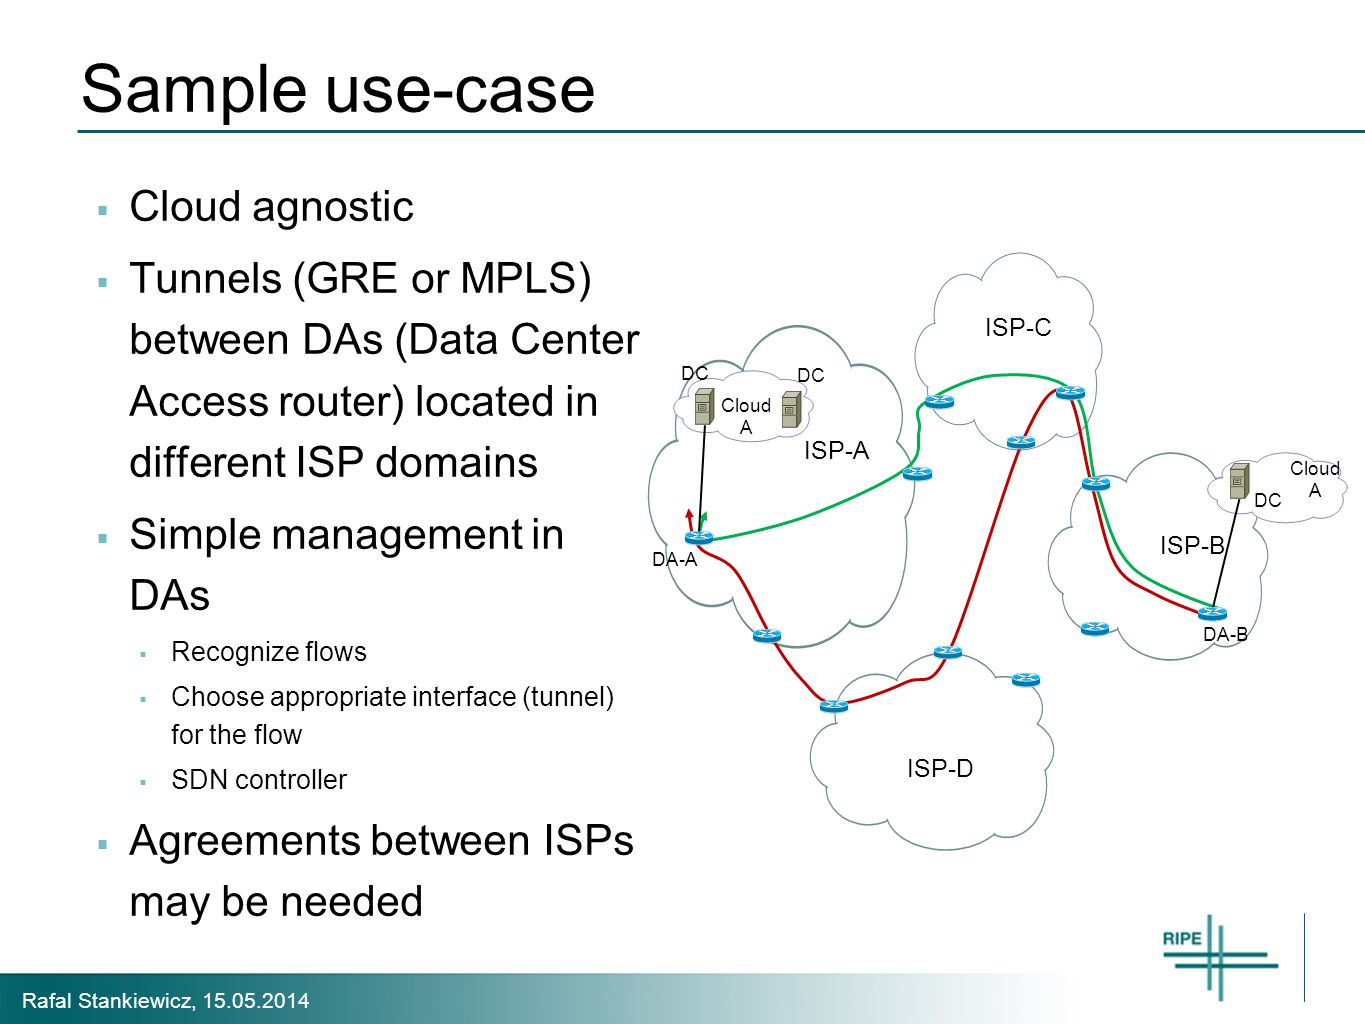 Rafal Stankiewicz, 15.05.2014 Sample use-case  Cloud agnostic  Tunnels (GRE or MPLS) between DAs (Data Center Access router) located in different ISP domains  Simple management in DAs  Recognize flows  Choose appropriate interface (tunnel) for the flow  SDN controller  Agreements between ISPs may be needed ISP-C ISP-A ISP-B ISP-D DA-A DA-B Cloud A DC Cloud A DC